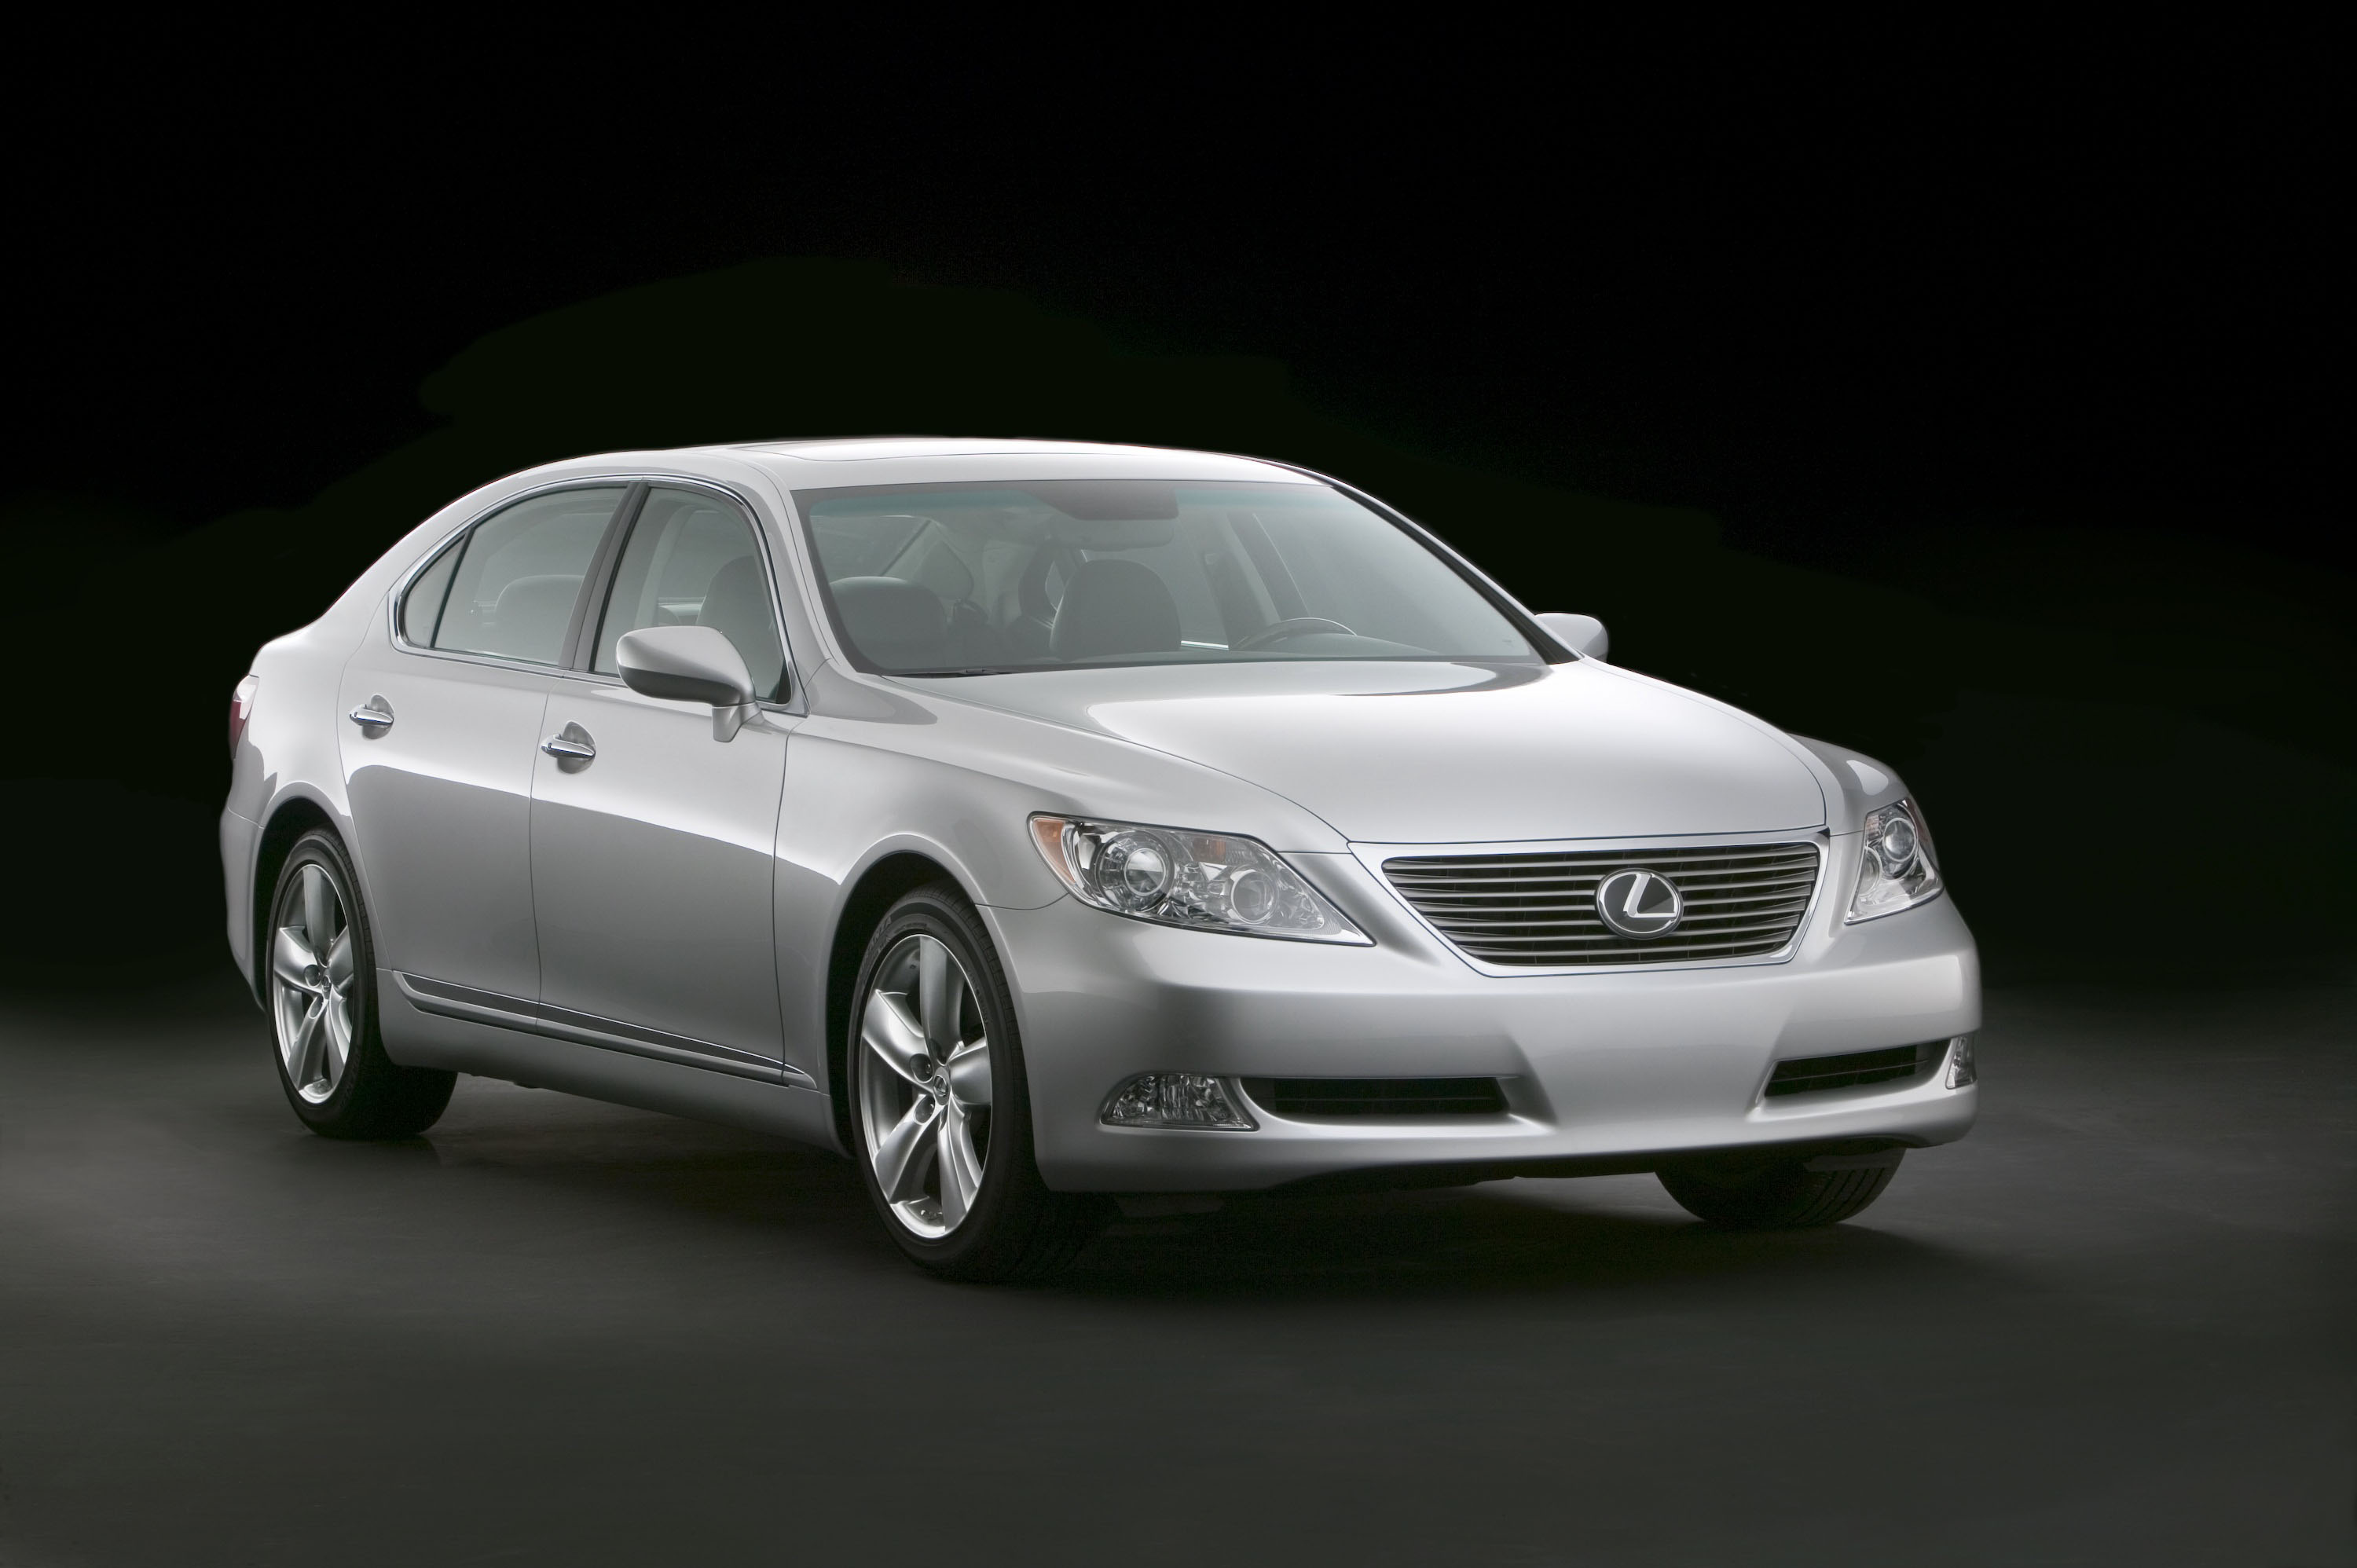 lexus ls 460 and 460l on sale starting october top speed. Black Bedroom Furniture Sets. Home Design Ideas